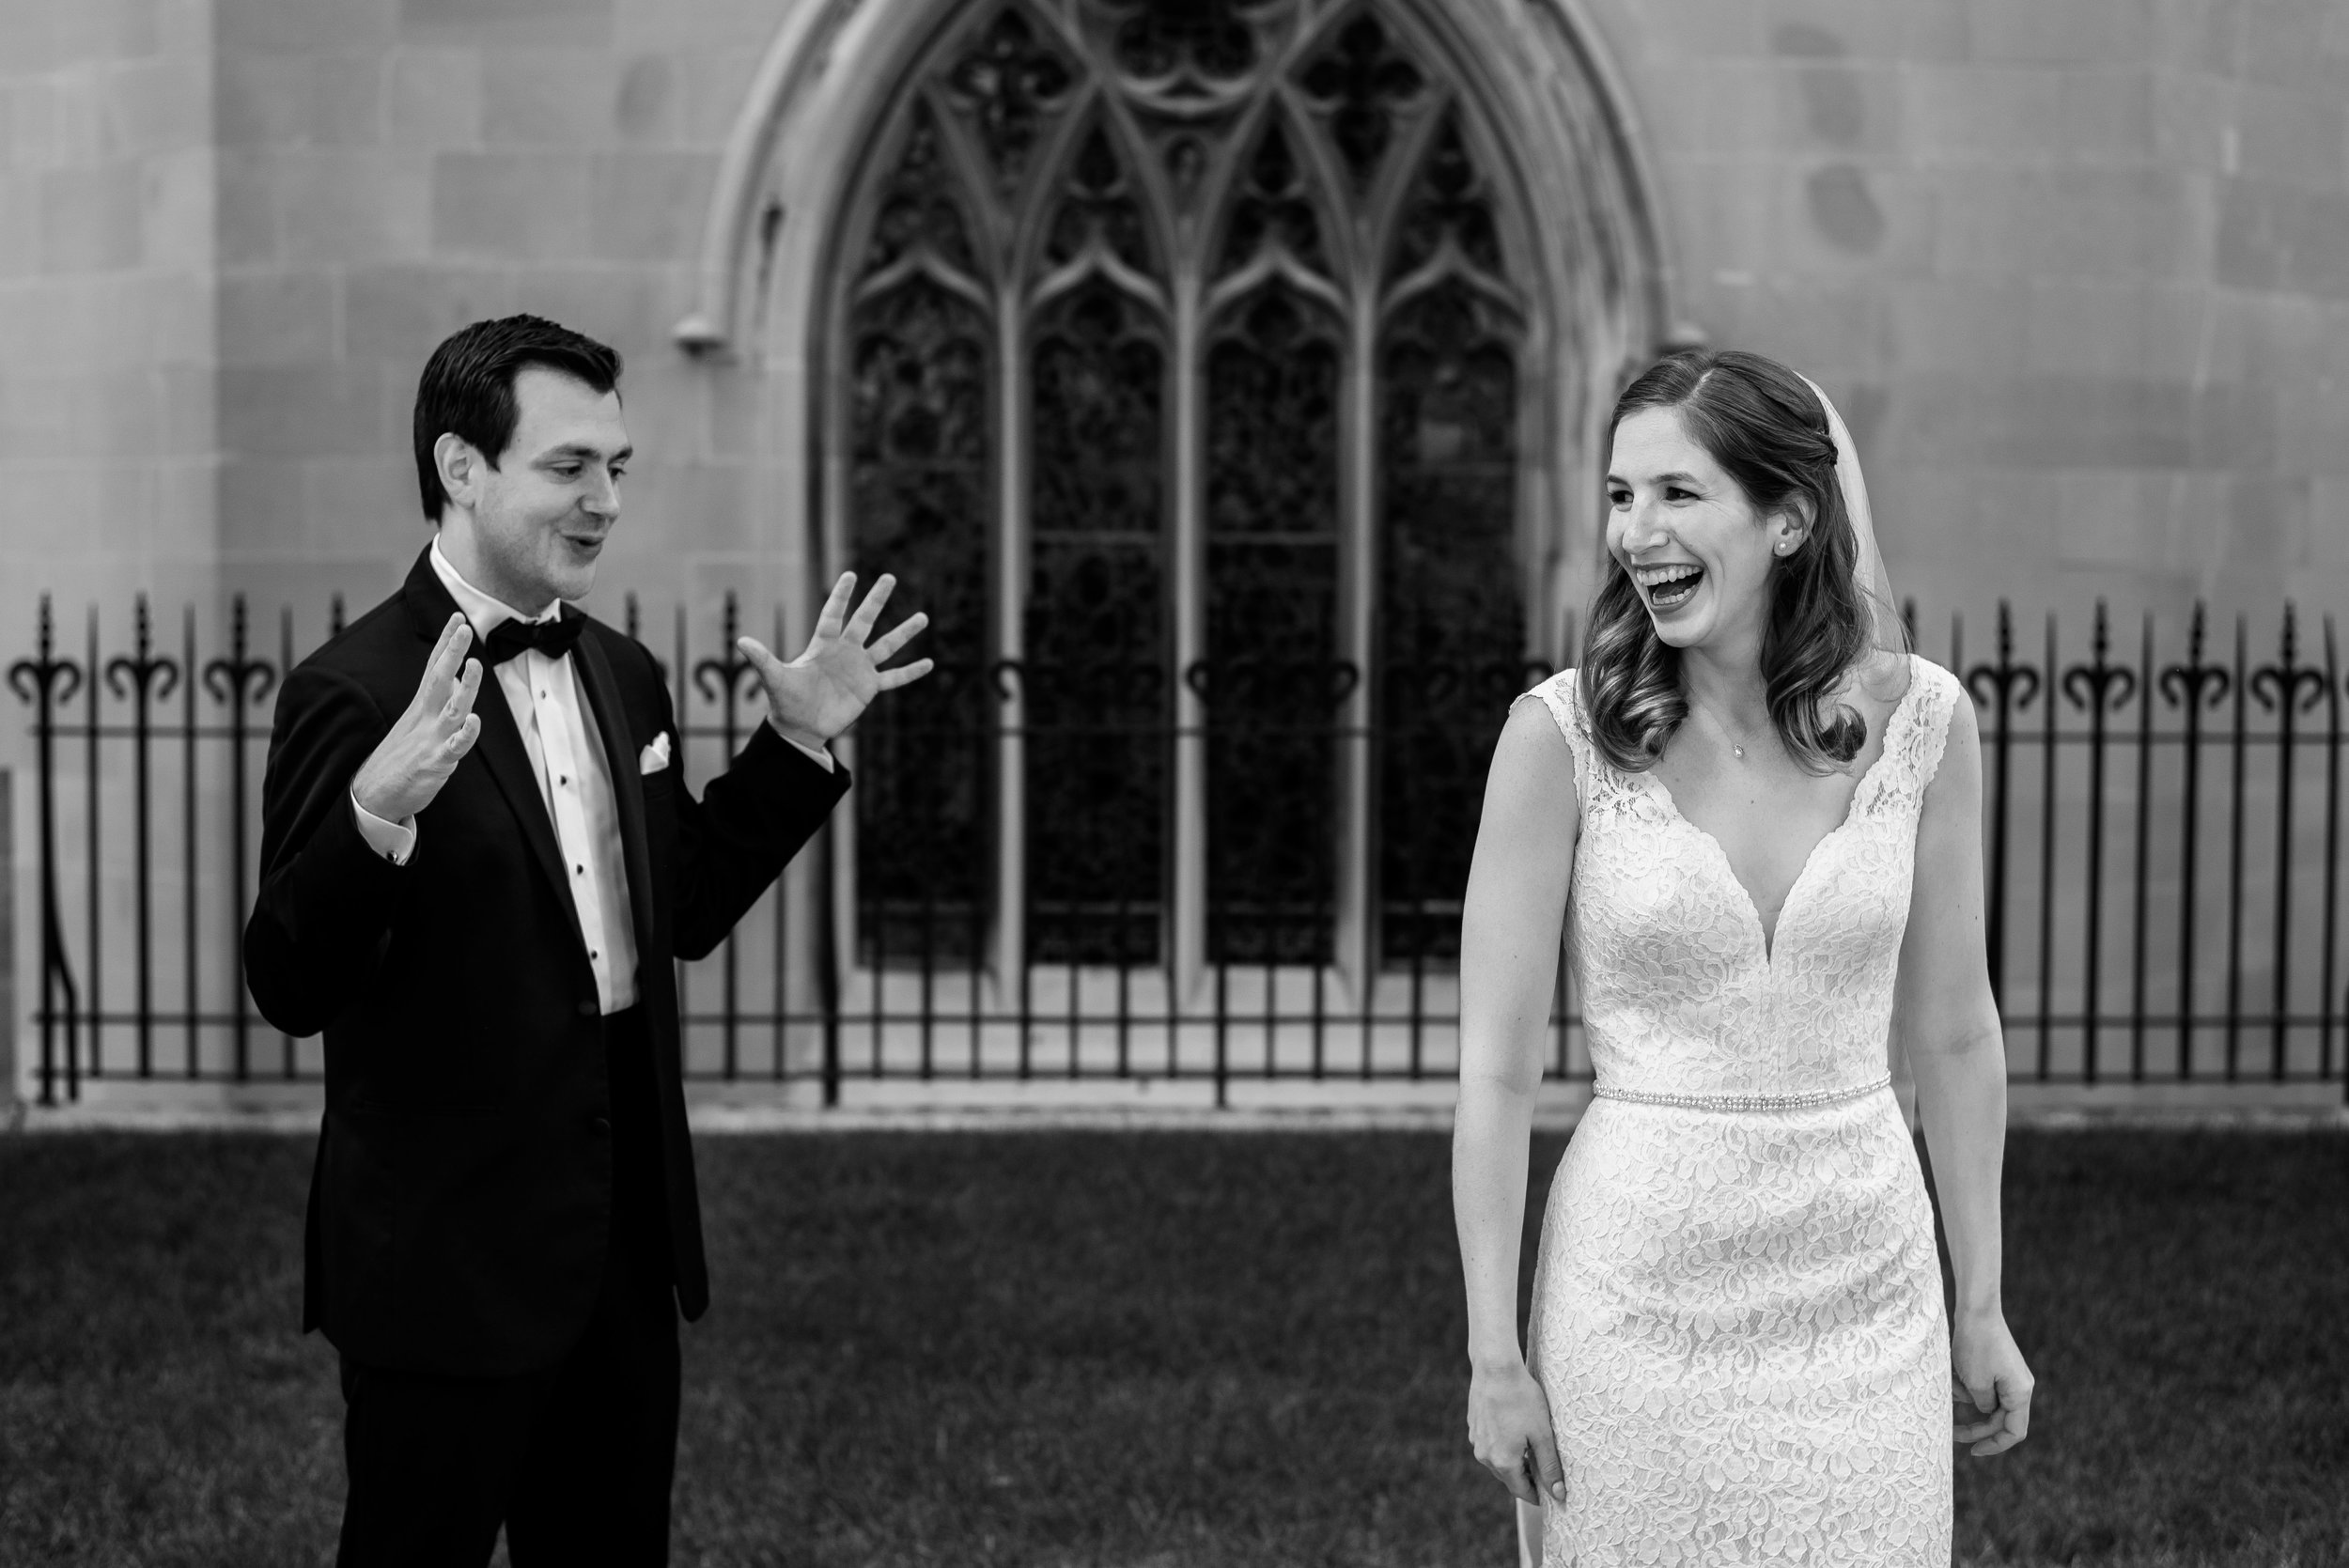 Emma + John | Washington, DC